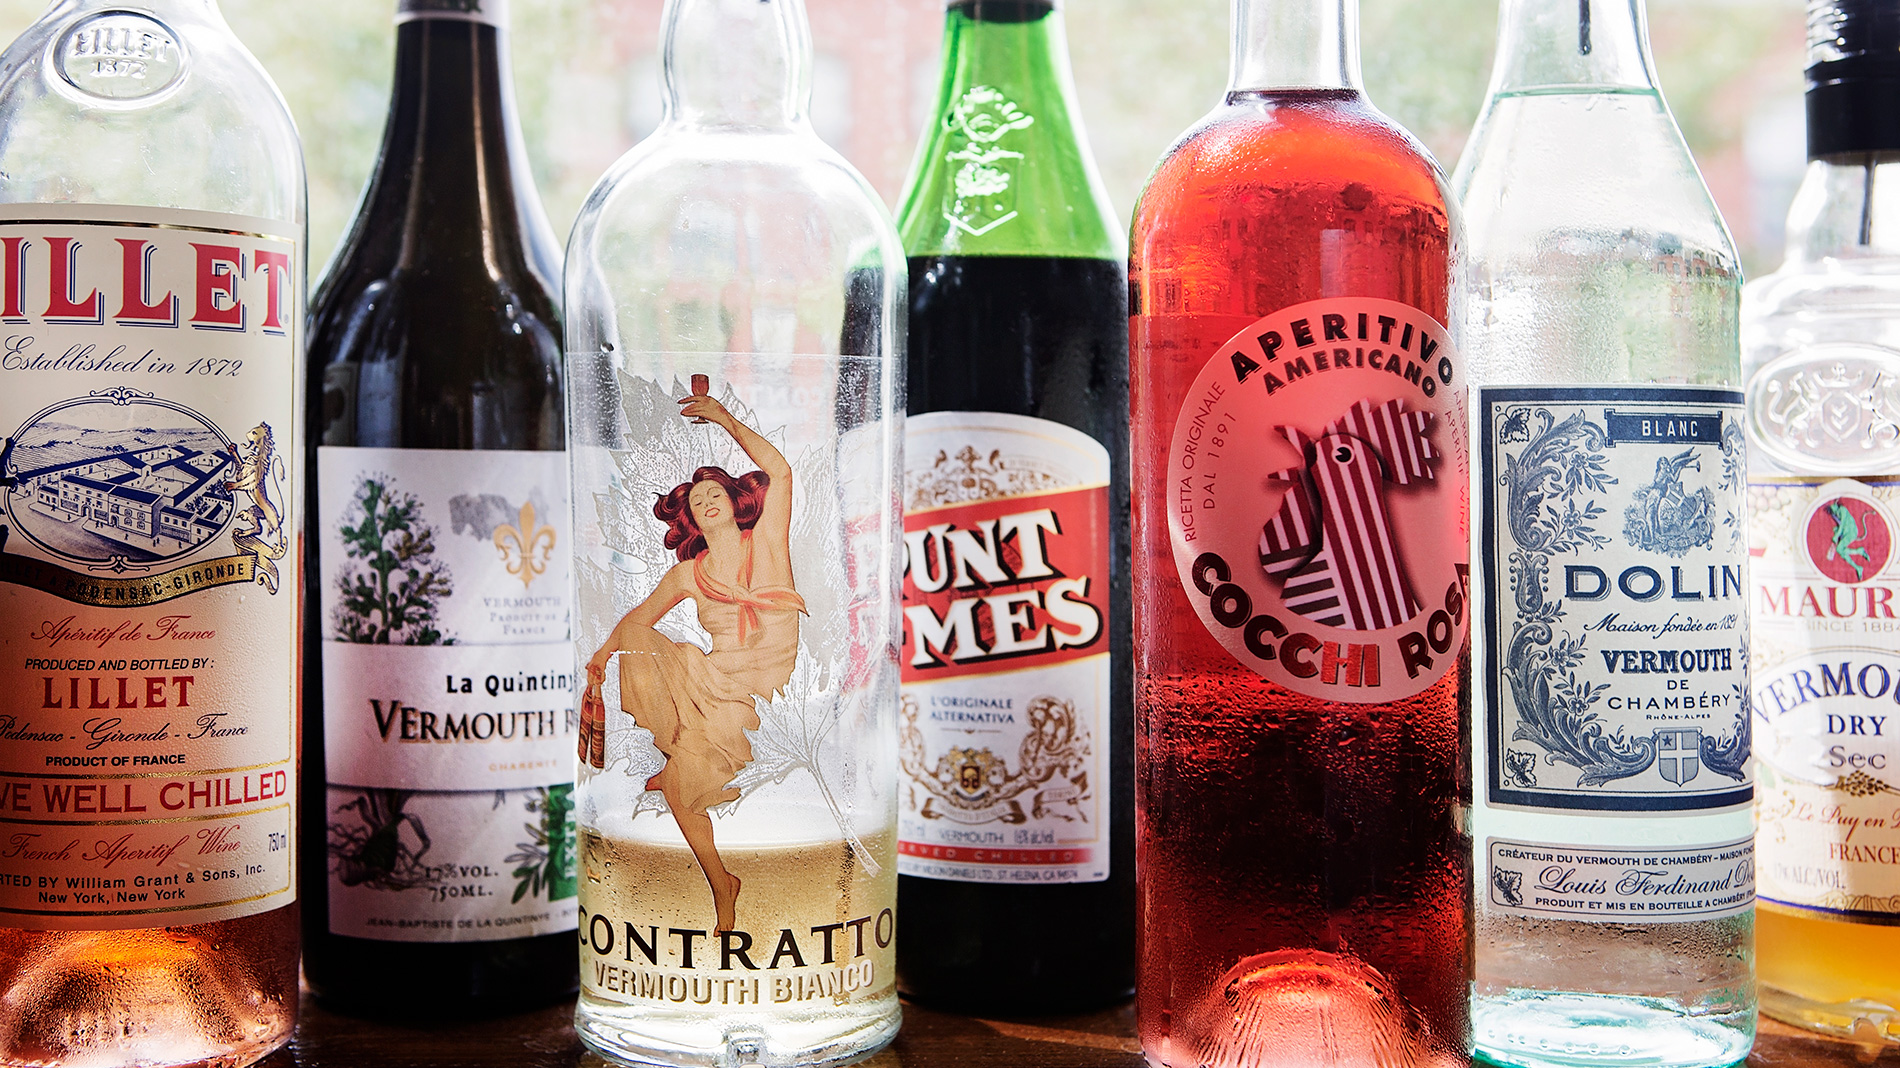 vermouth is an aperitif wine that's fortified and aromatized